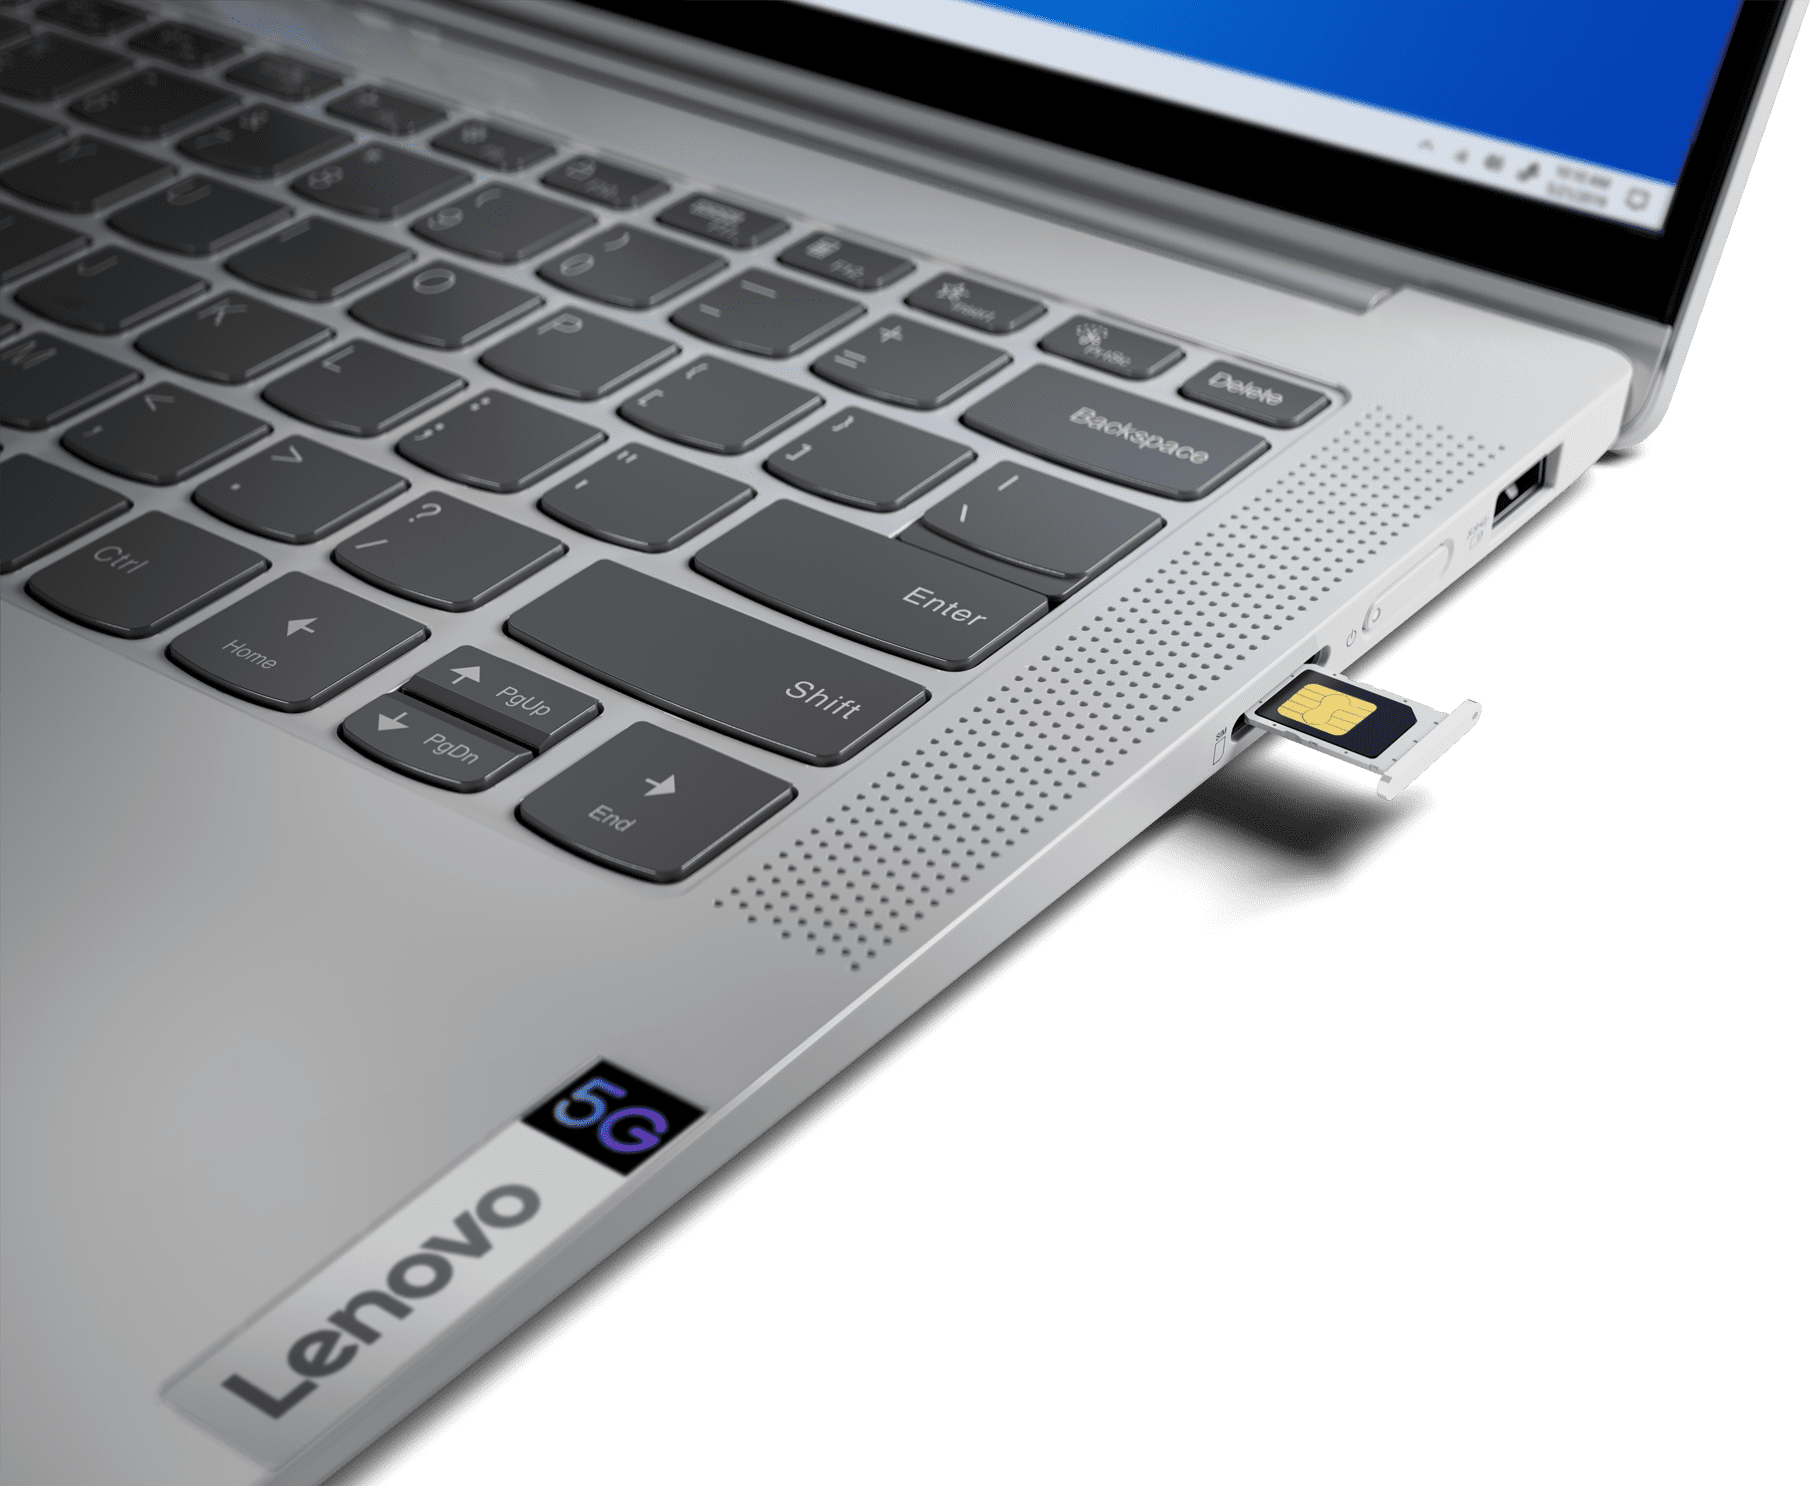 All New Connected Consumer Experiences Start with Lenovo